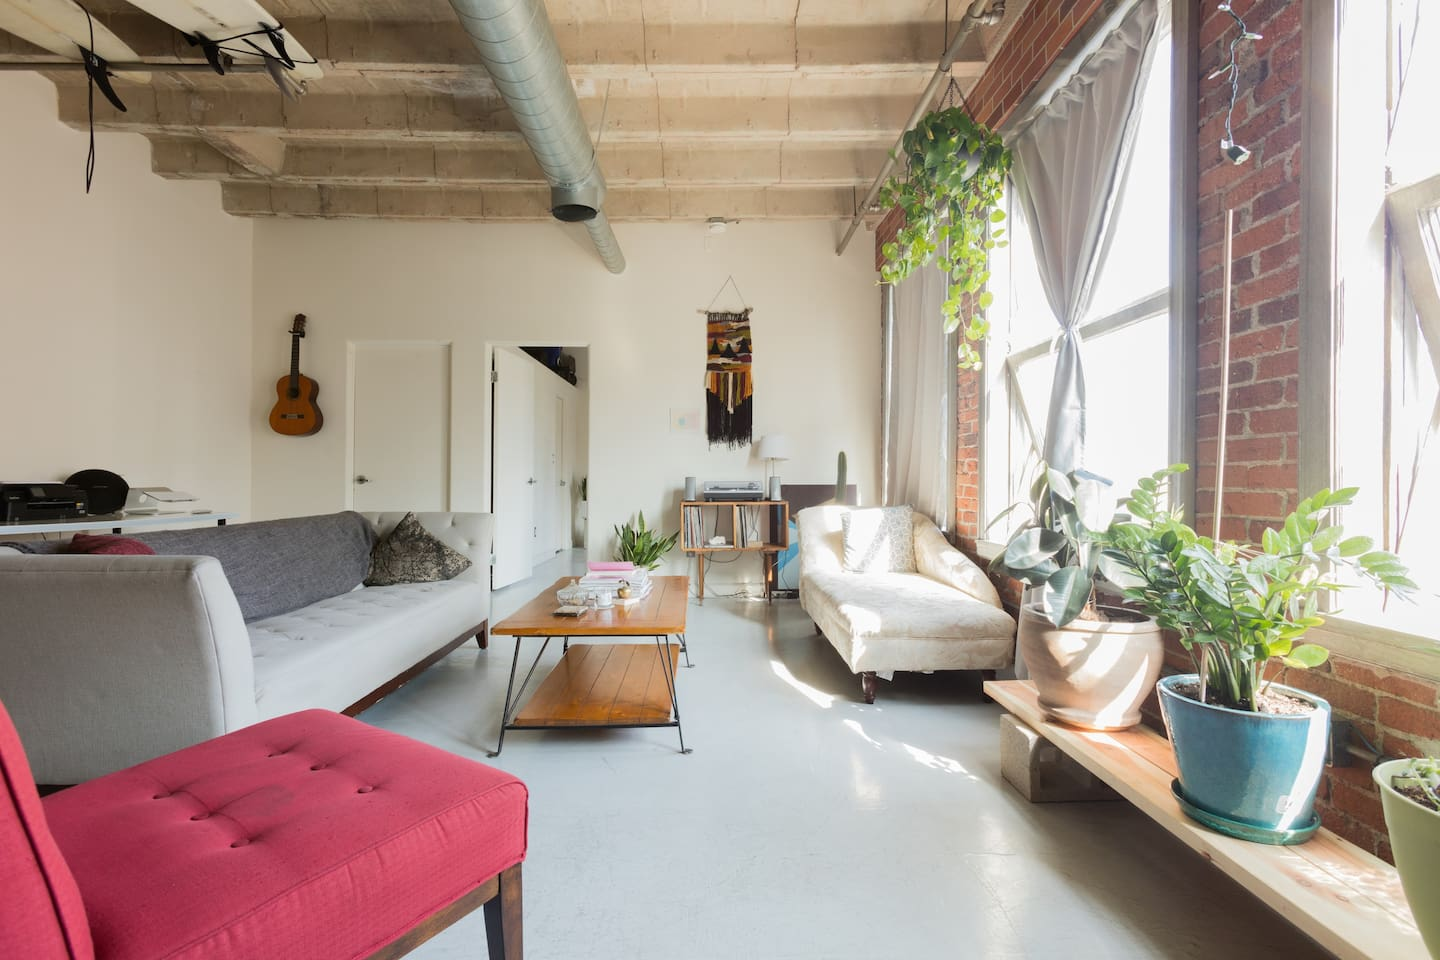 private room in modern loft dtla lofts for rent in los angeles